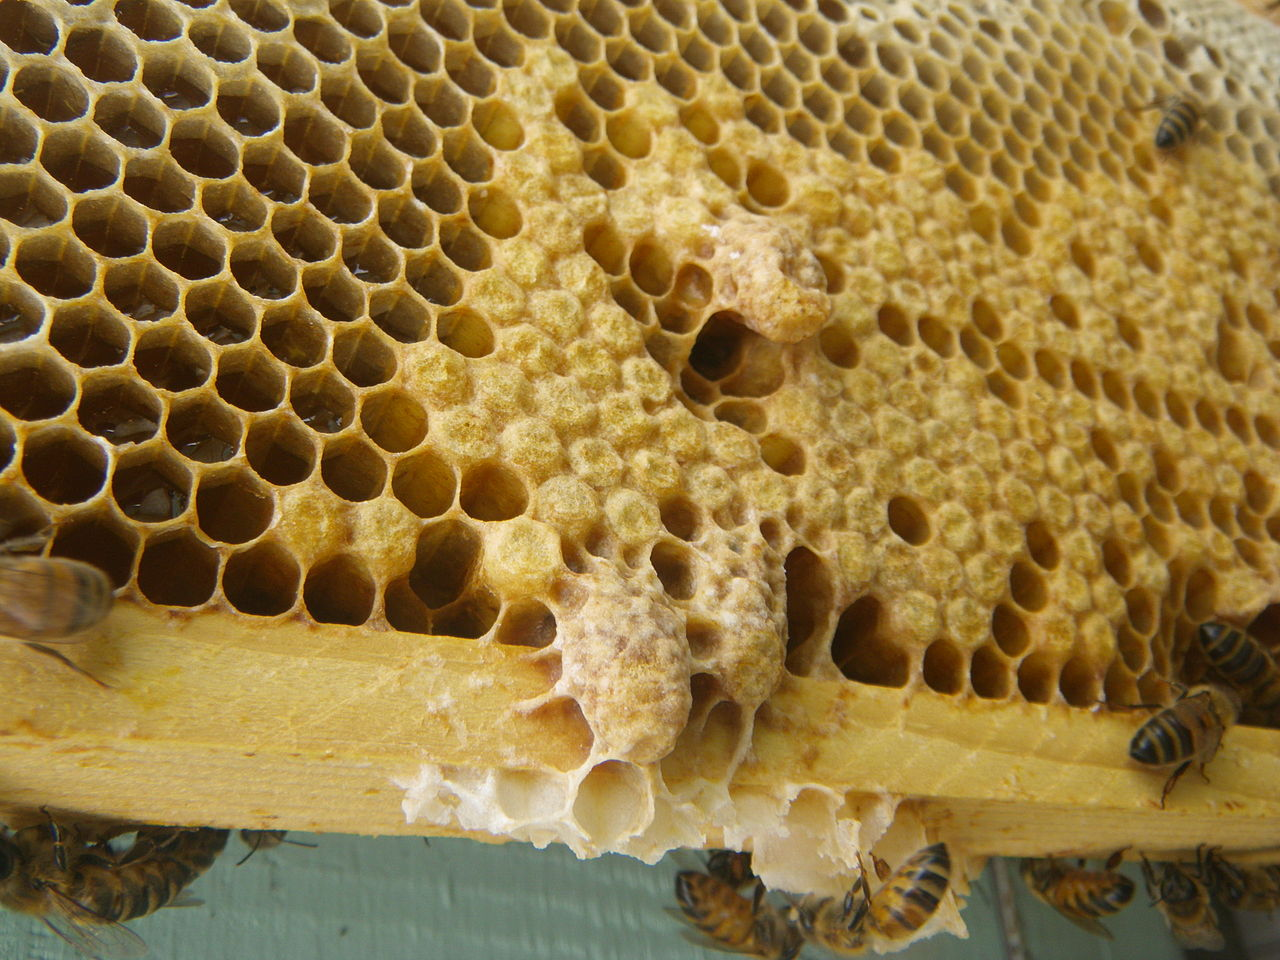 what do drone bees with File Capped Emergency Supercedure Queen Cells Of The Honey Bee on Pesticides Bees  plex besides Varroa Treatment also Little Horn Facaed Bees Mating additionally File Capped emergency supercedure queen cells of the honey bee in addition Funny1.